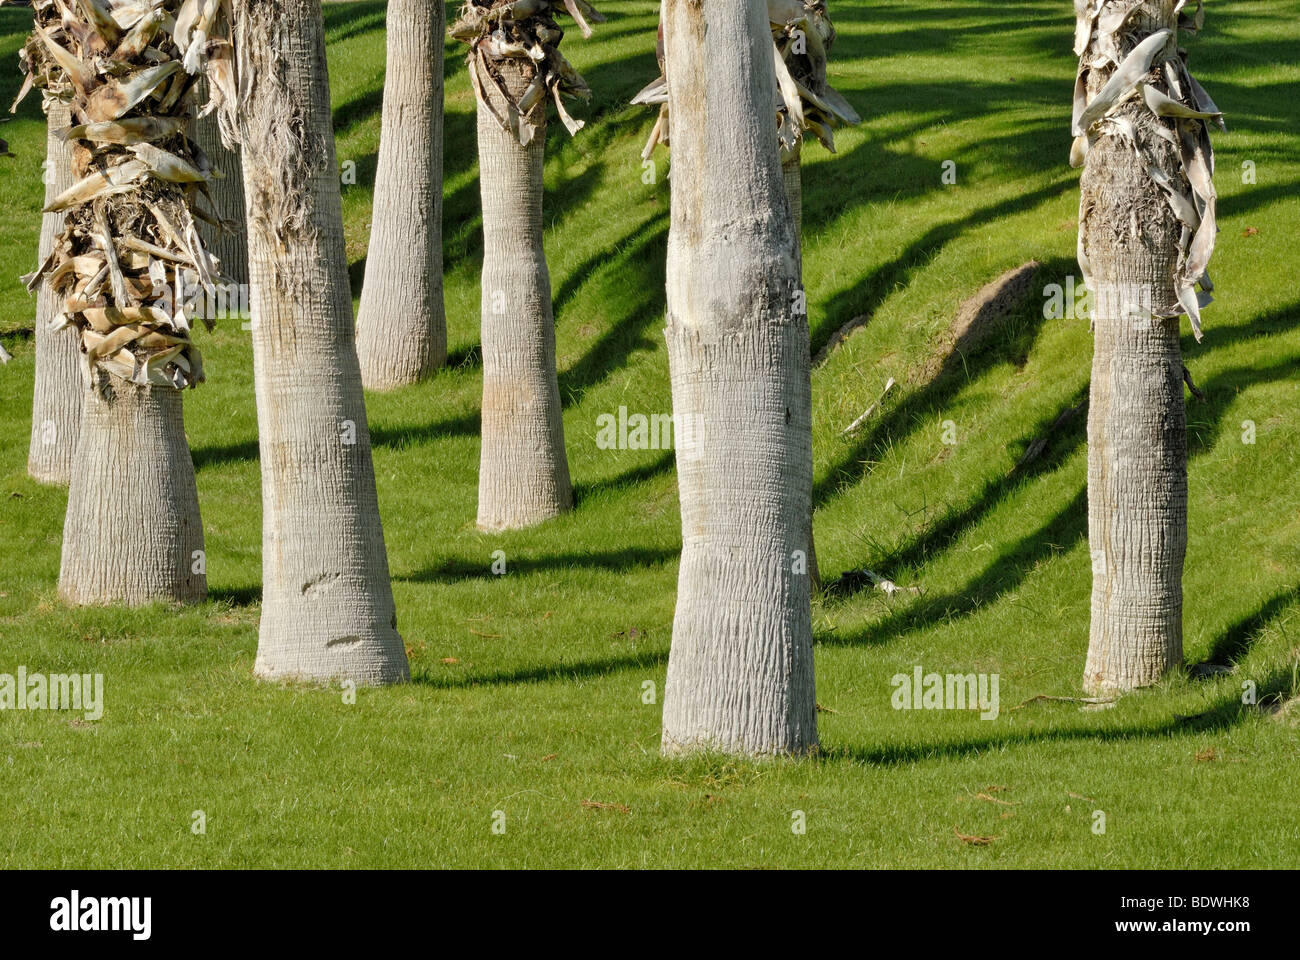 Palm trunks, throwing shadows onto watered lawn, Indian Palm Country Club, Indio, Southern California, California, - Stock Image